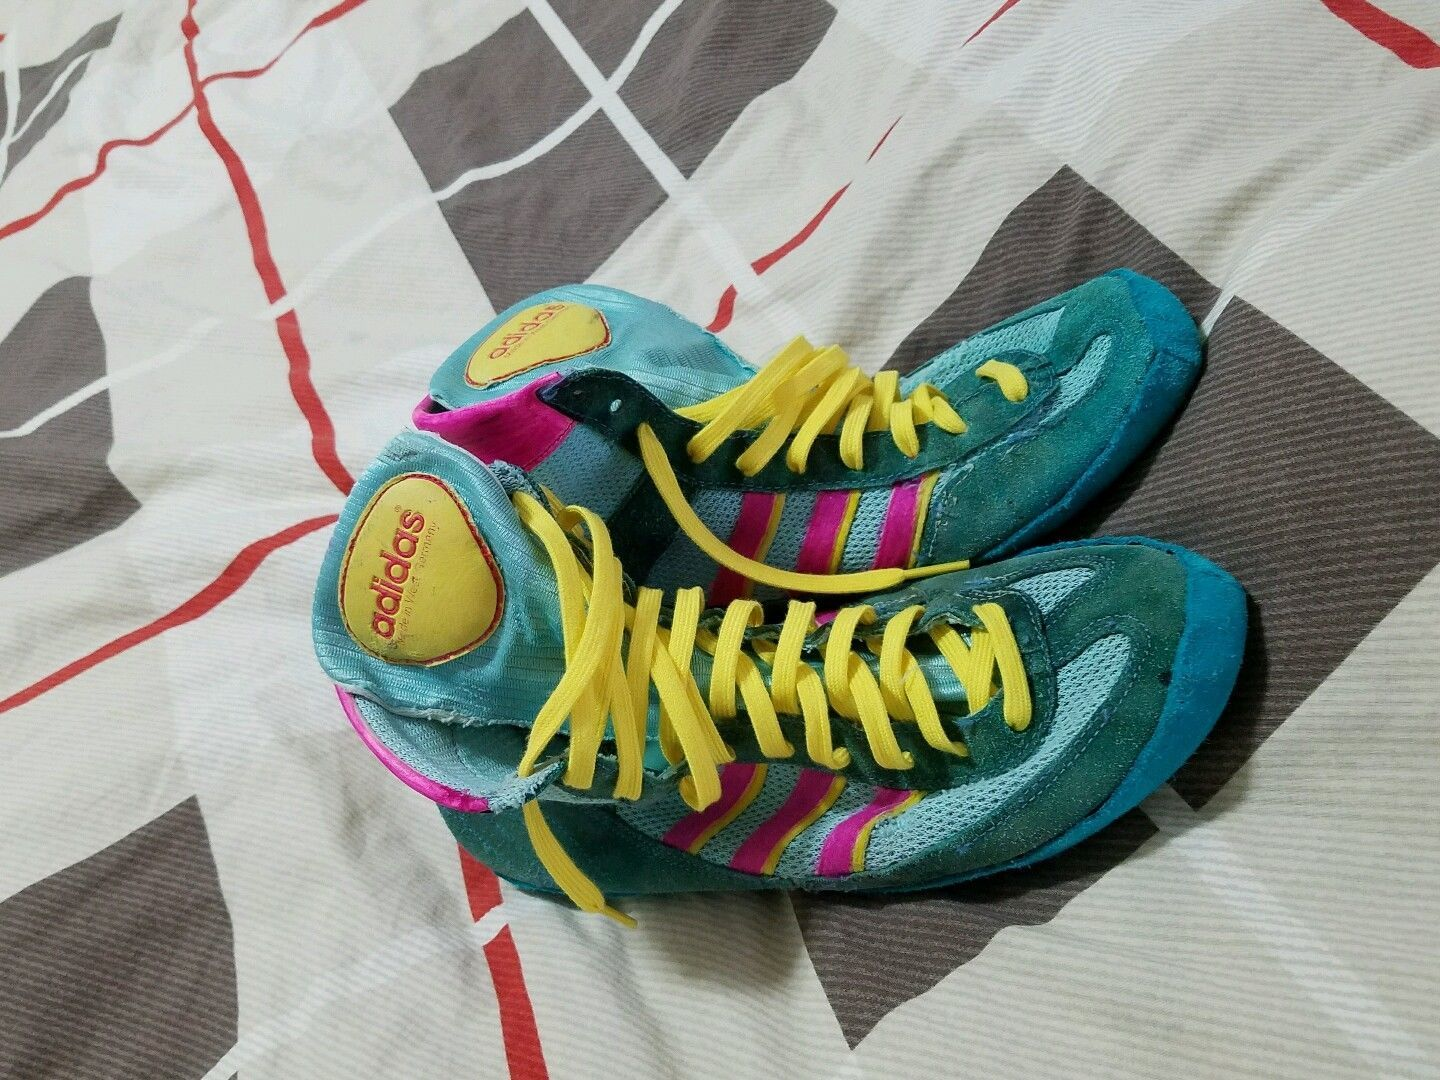 Pin on Adidas 88 Combat Speed Wrestling Shoes